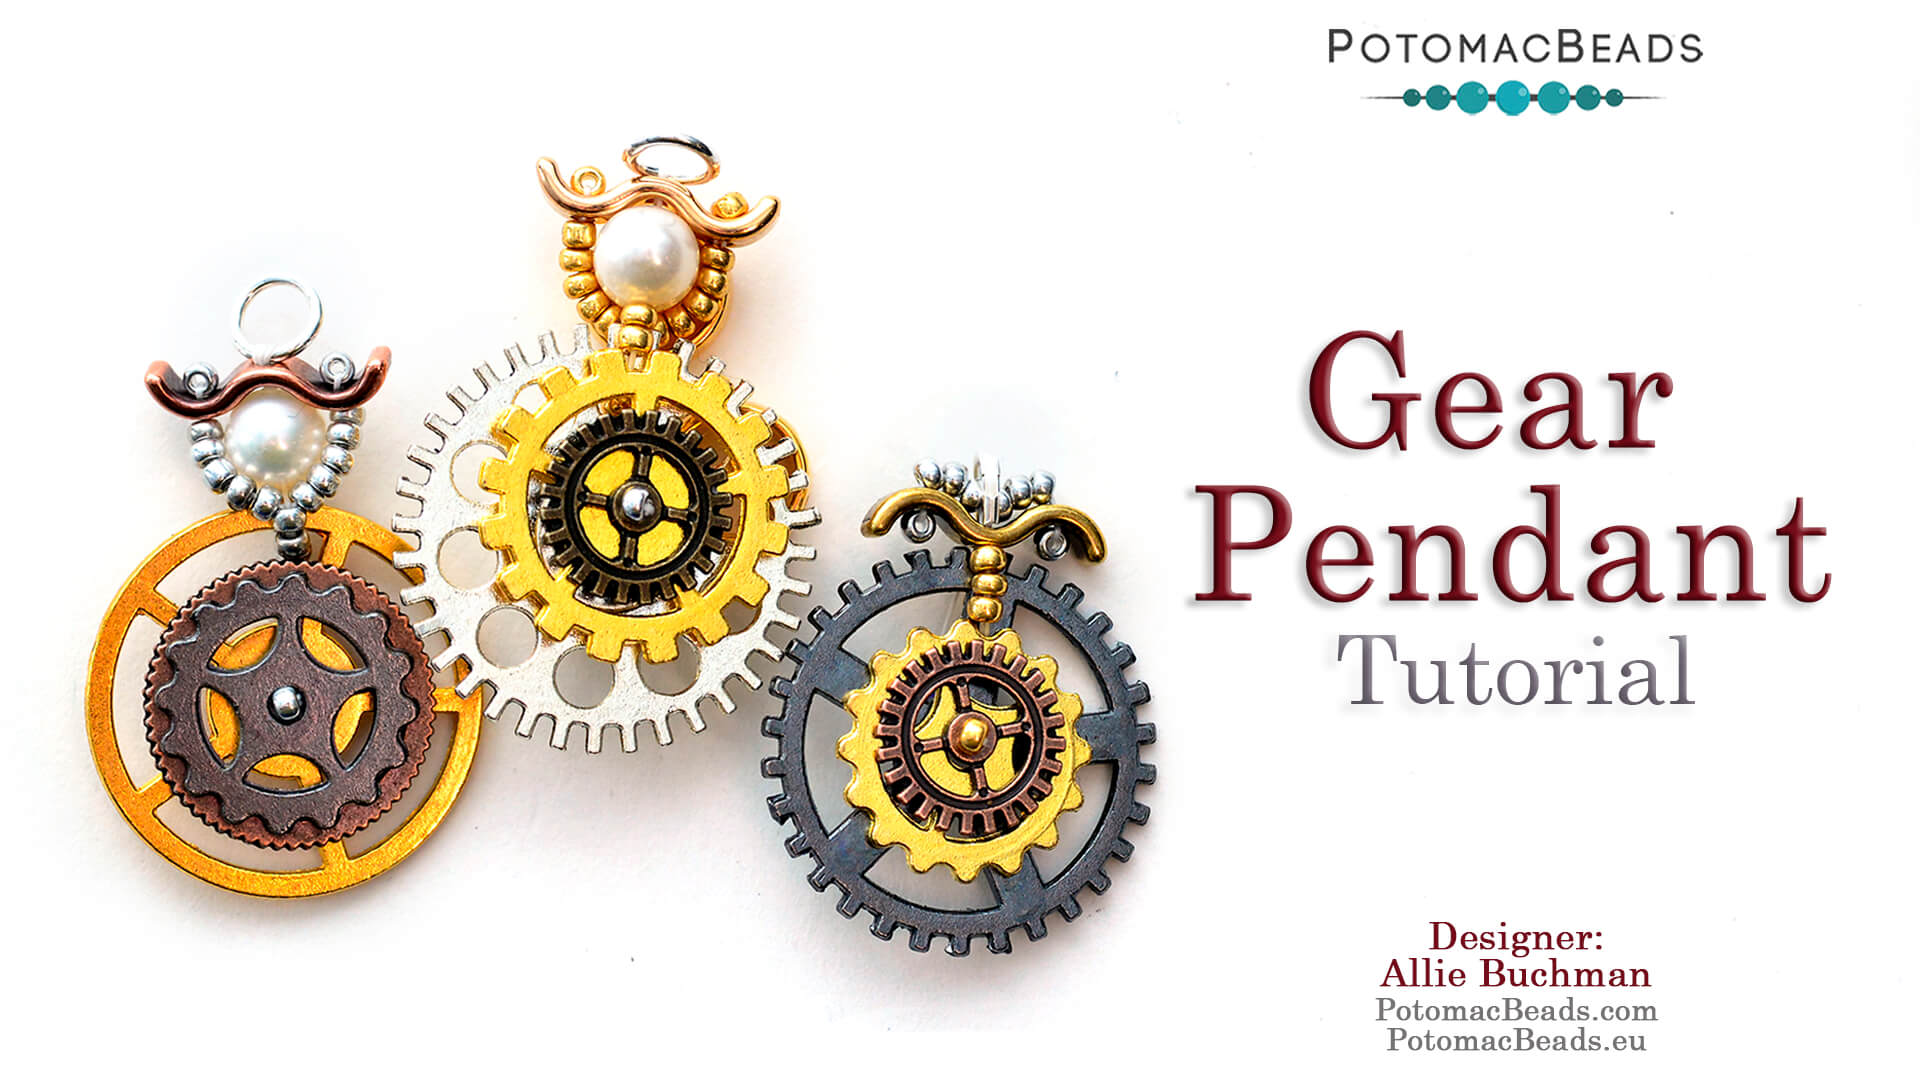 How to Bead Jewelry / Videos Sorted by Beads / Pearl Videos (Czech, Freshwater, Potomac Pearls) / Gear Pendant Tutorial